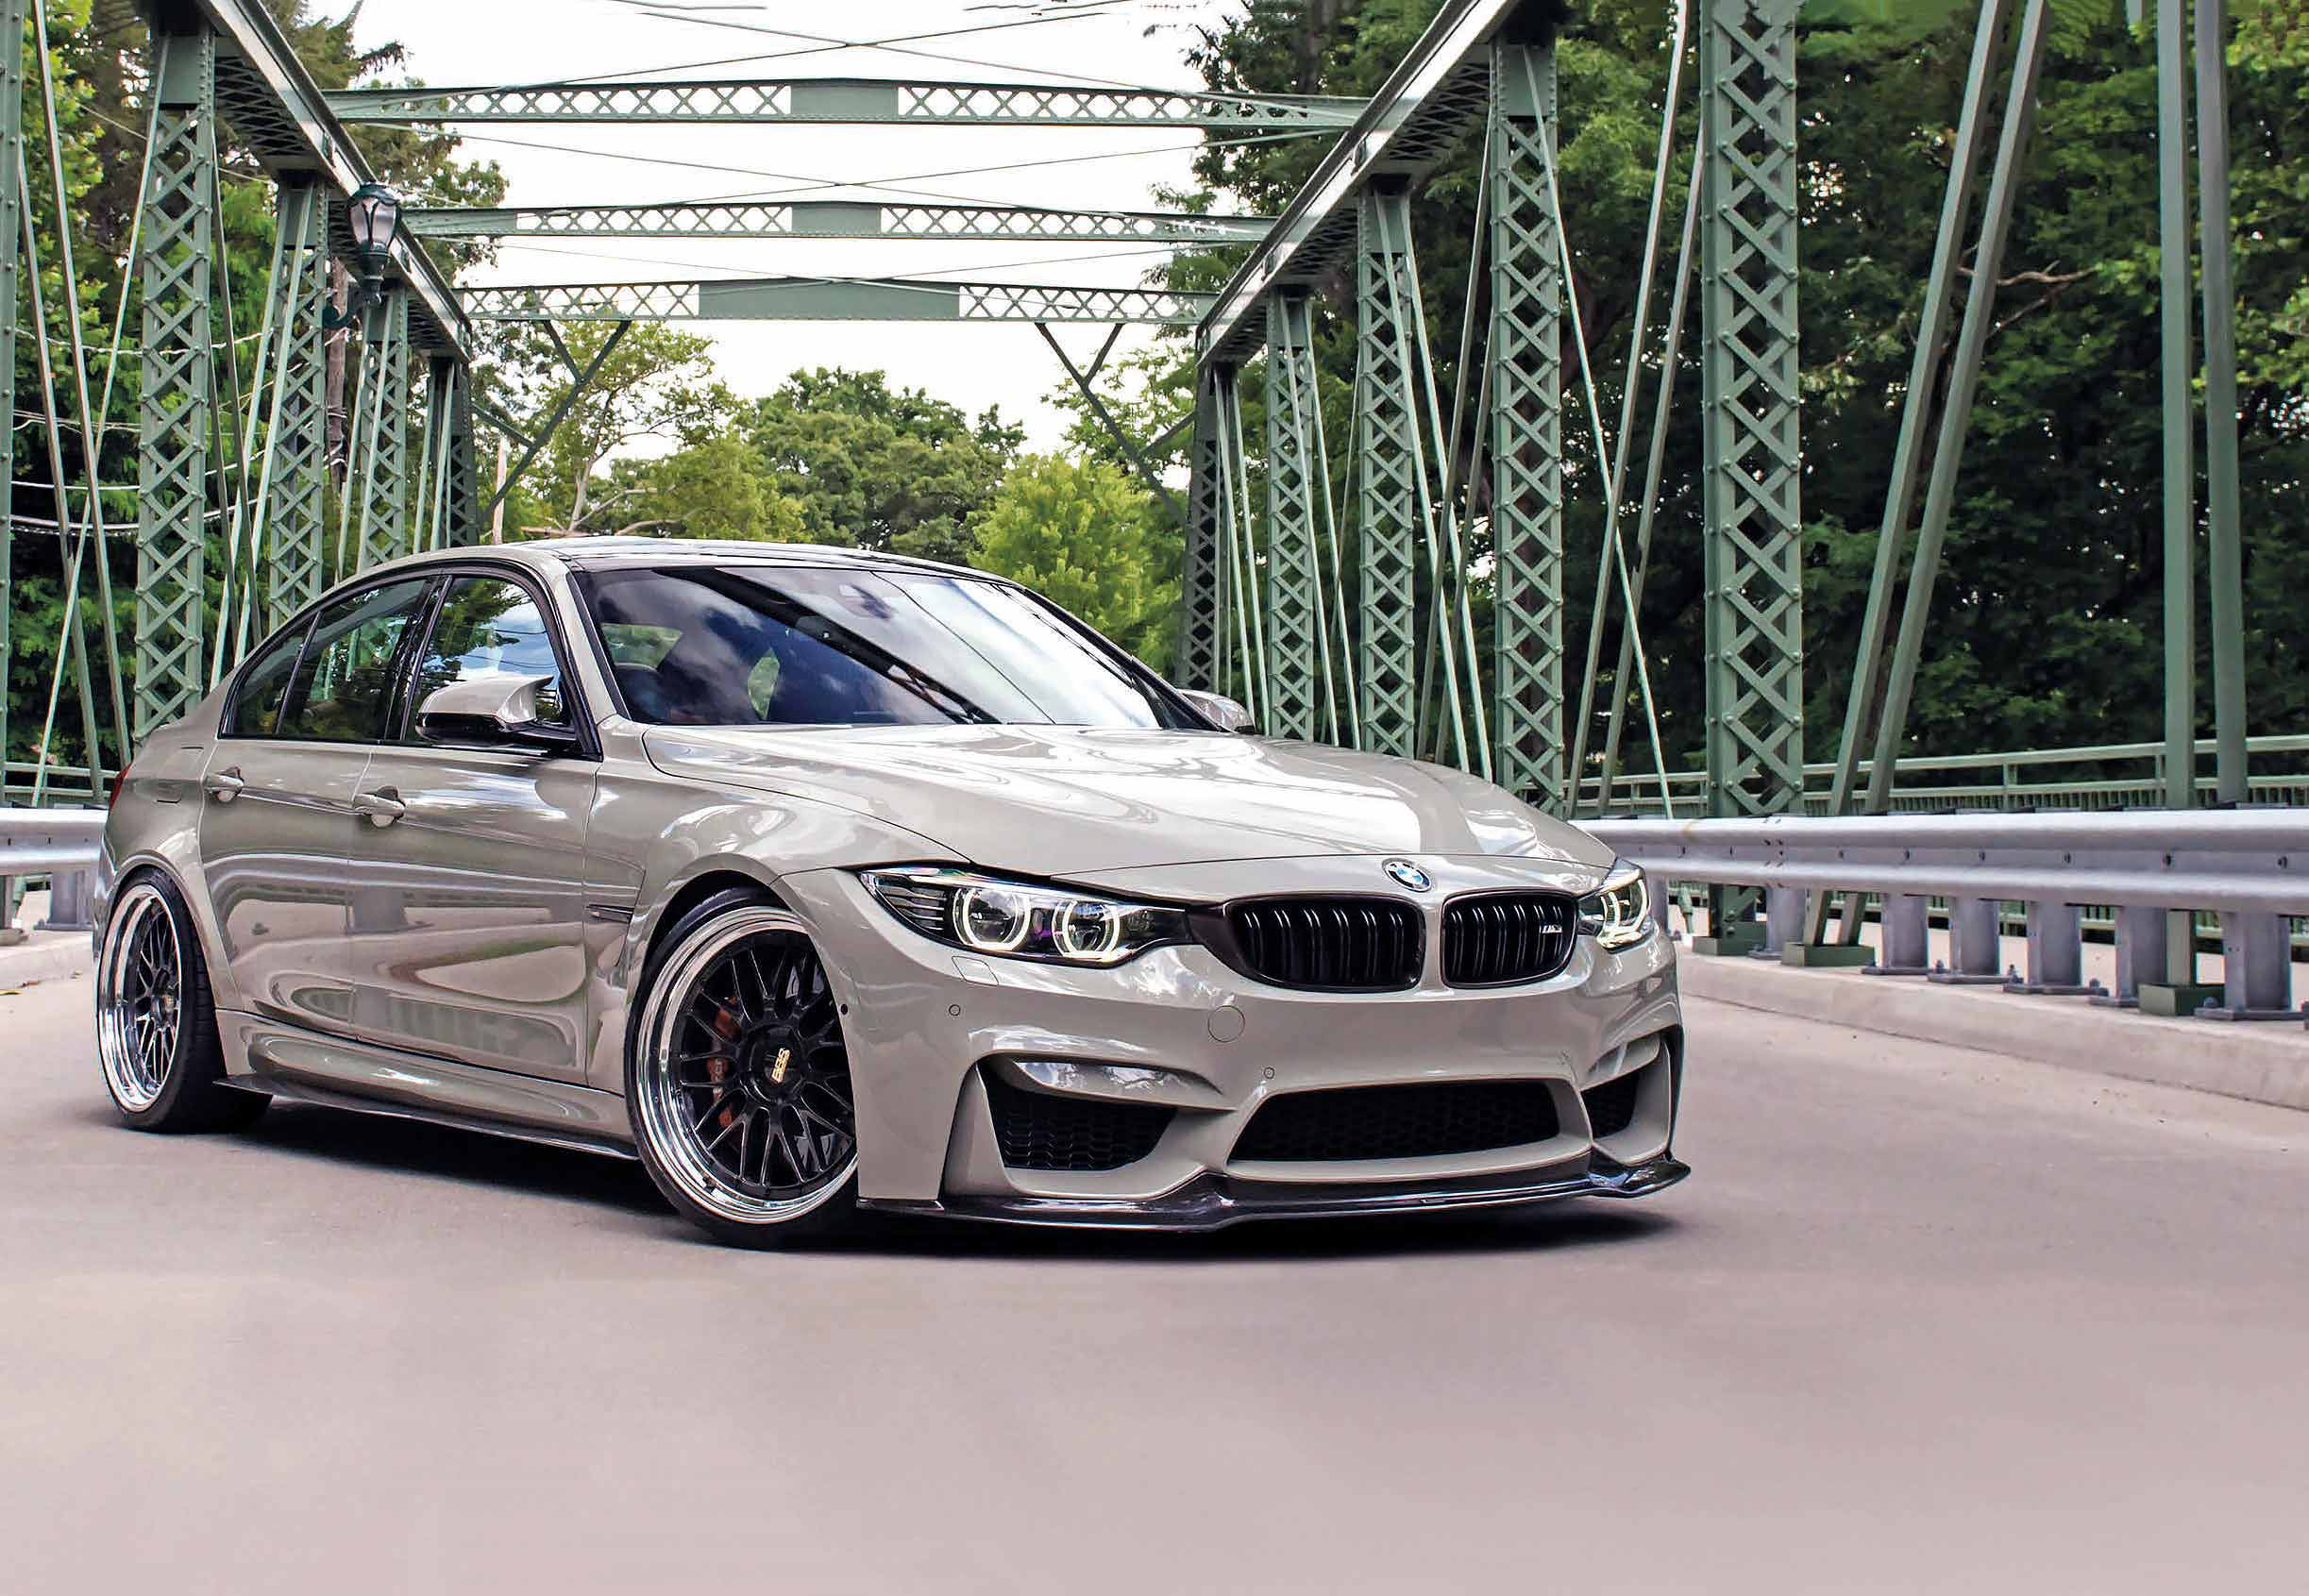 550hp tuned fashion grey bmw m3 f80 - drive-my blogs - drive